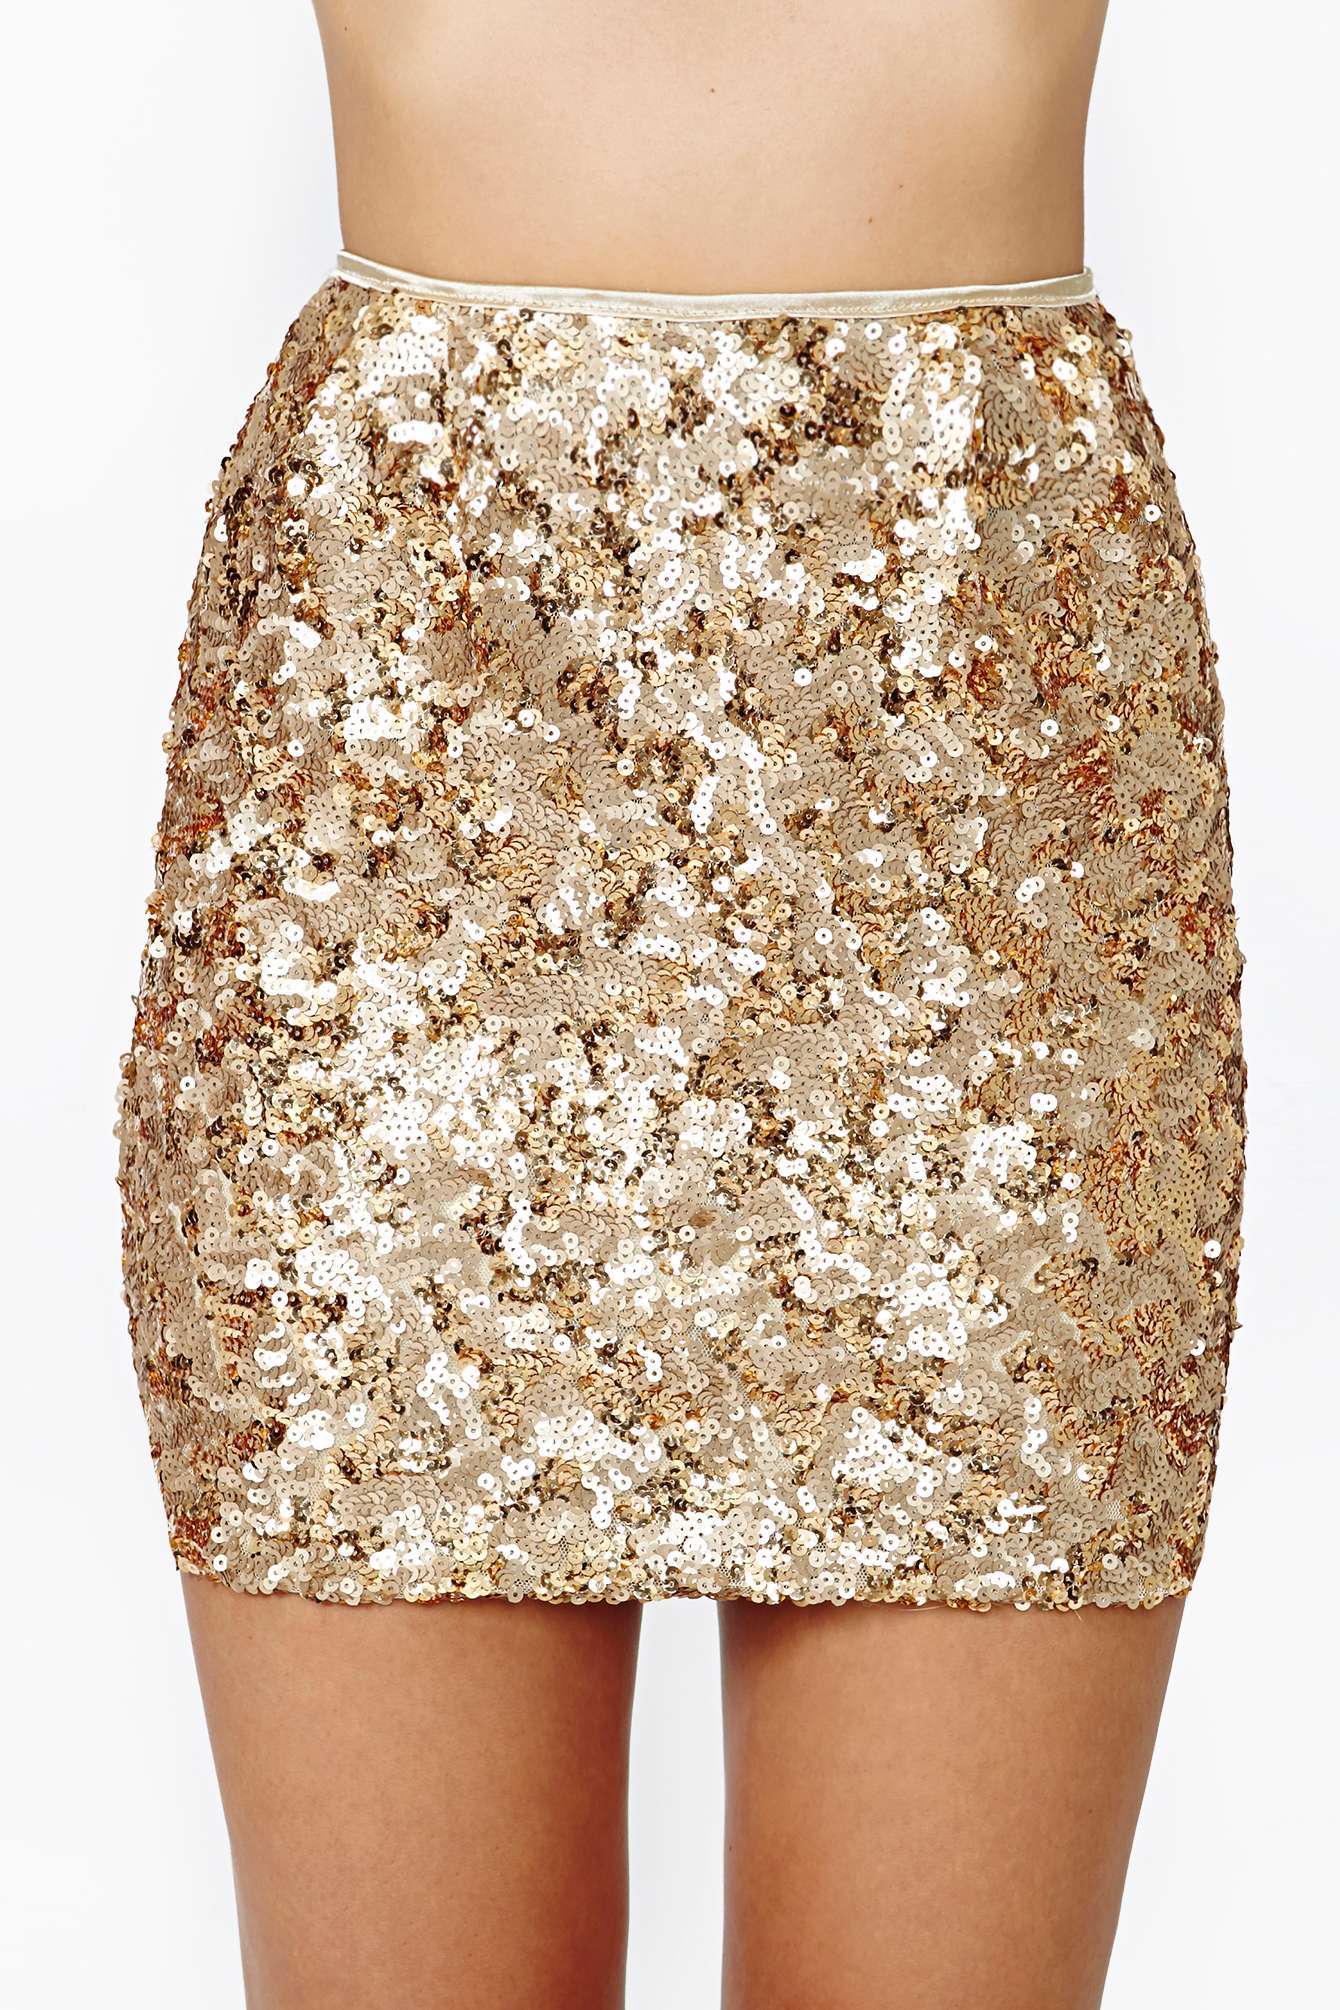 Sequin Gold Skirt - Dress Ala